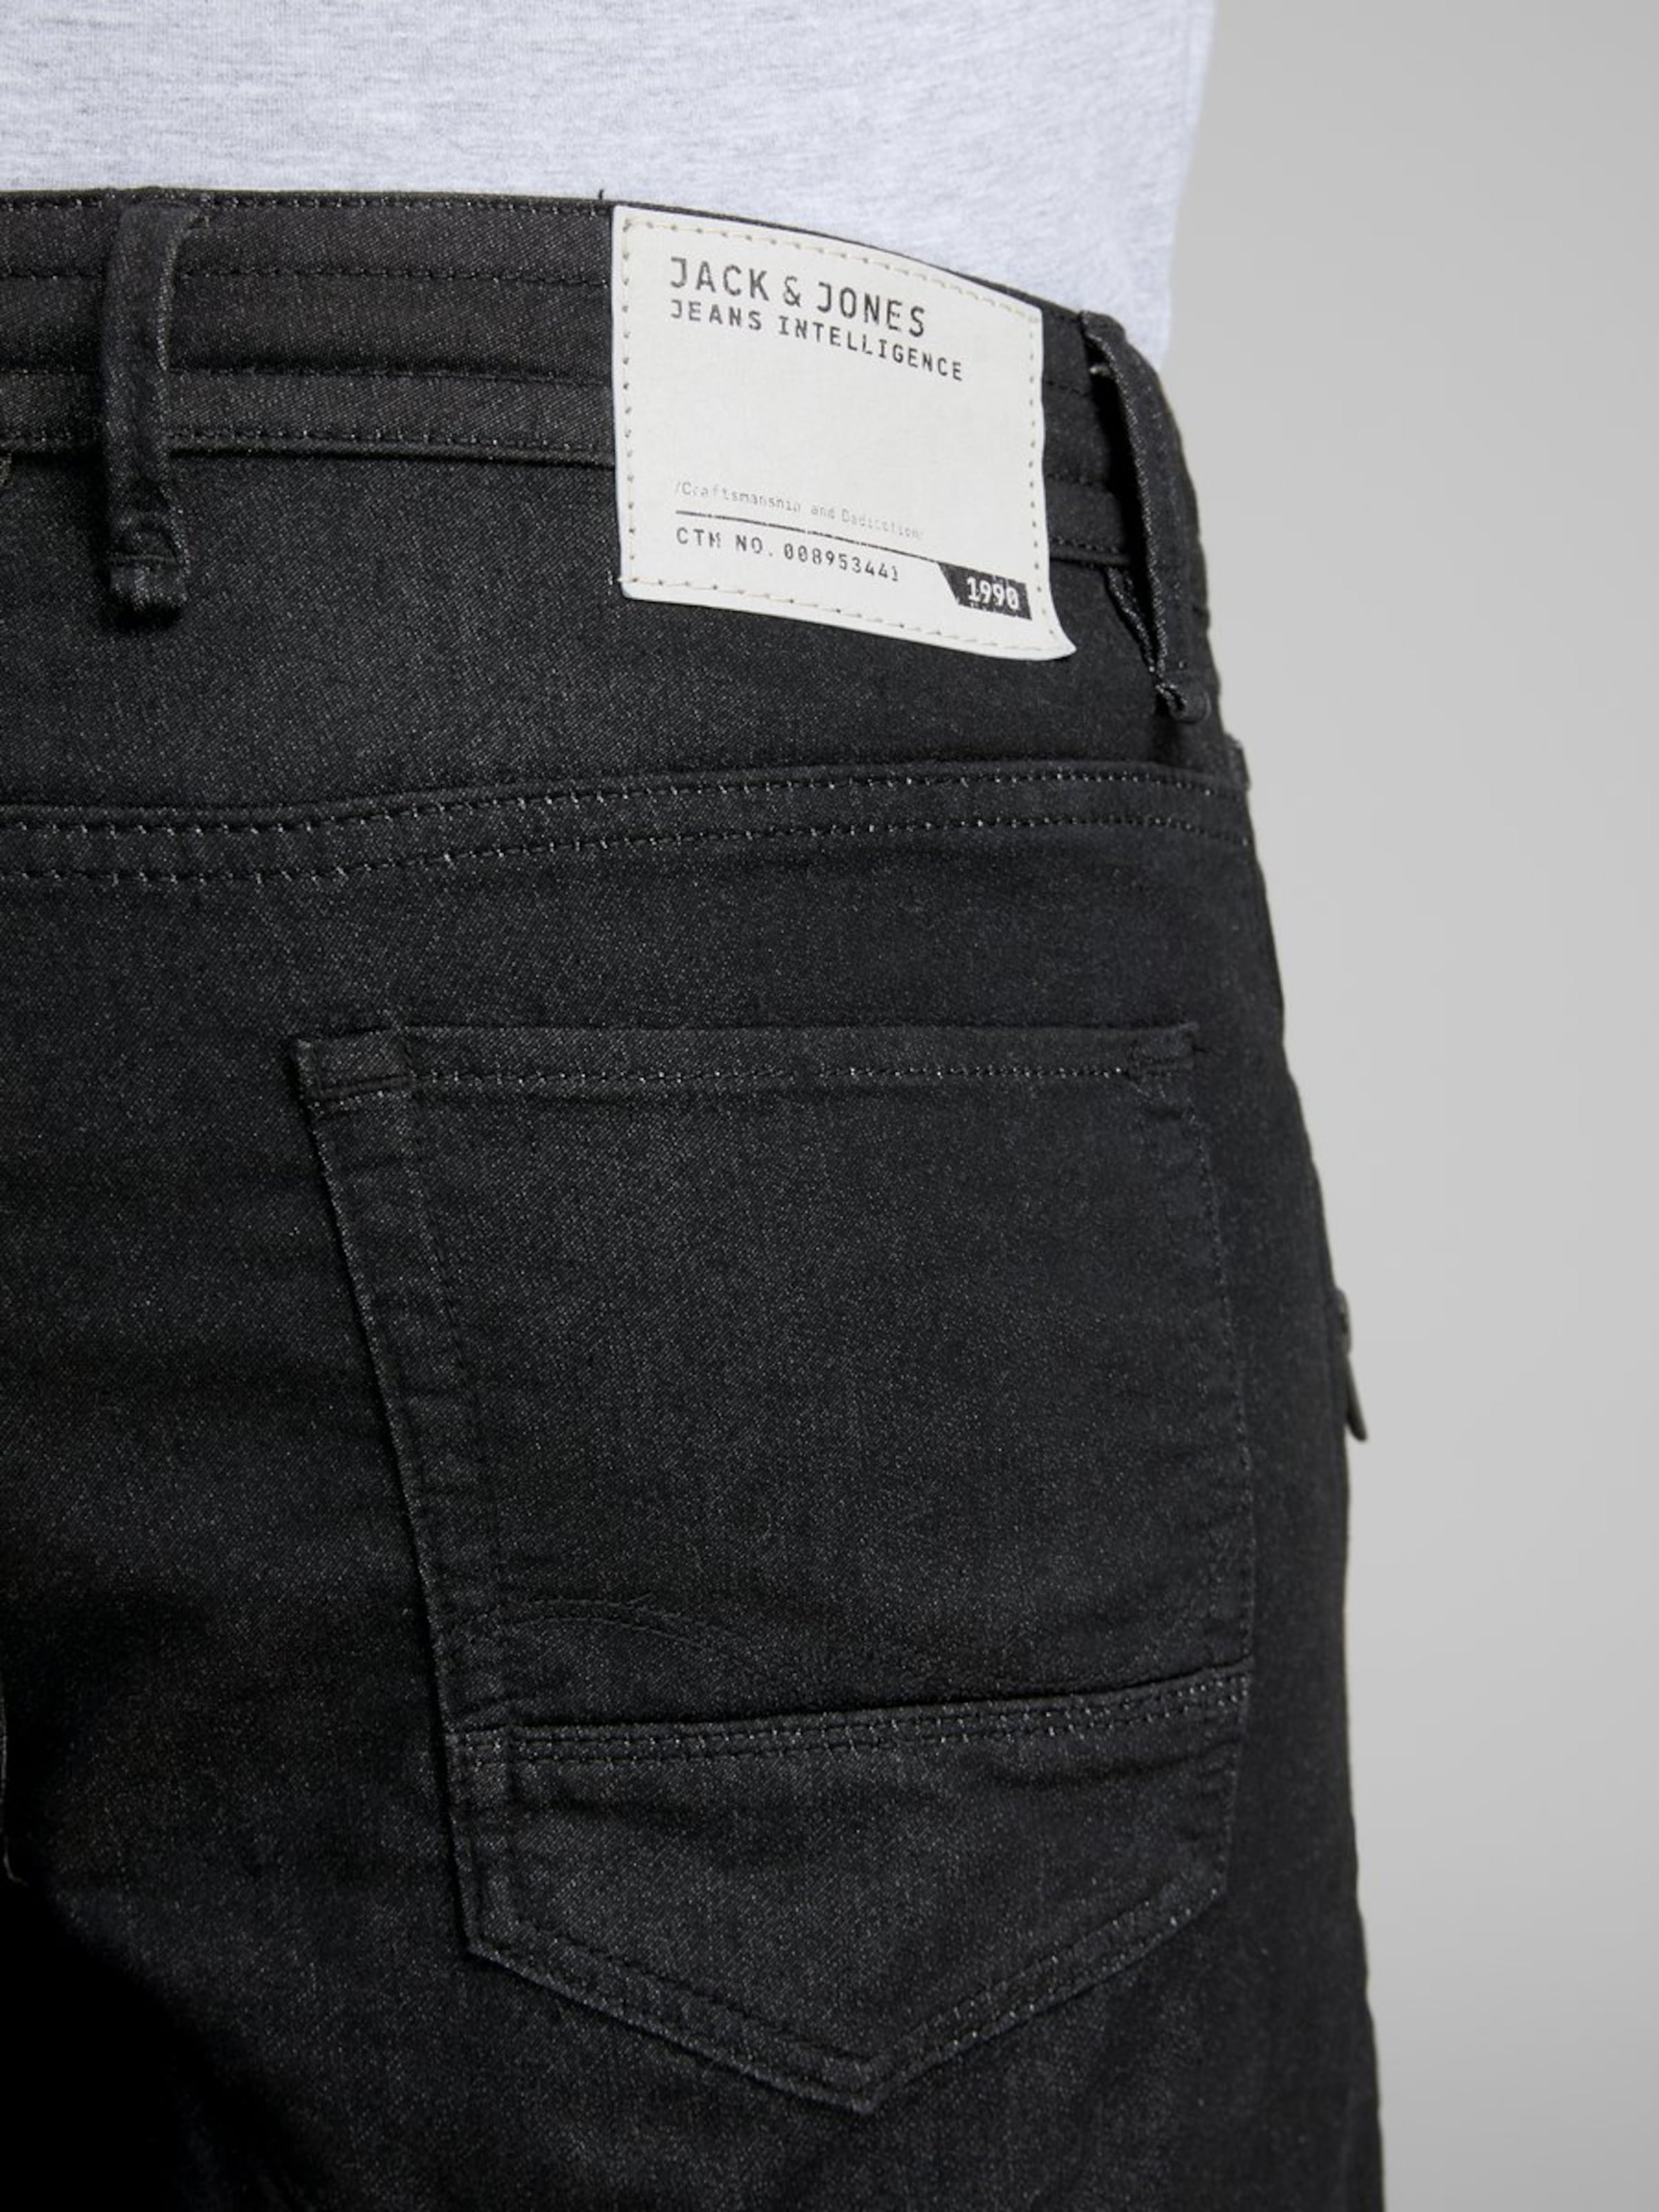 'simon' Pantalon En Noir Jackamp; Jones KTF3lJc1